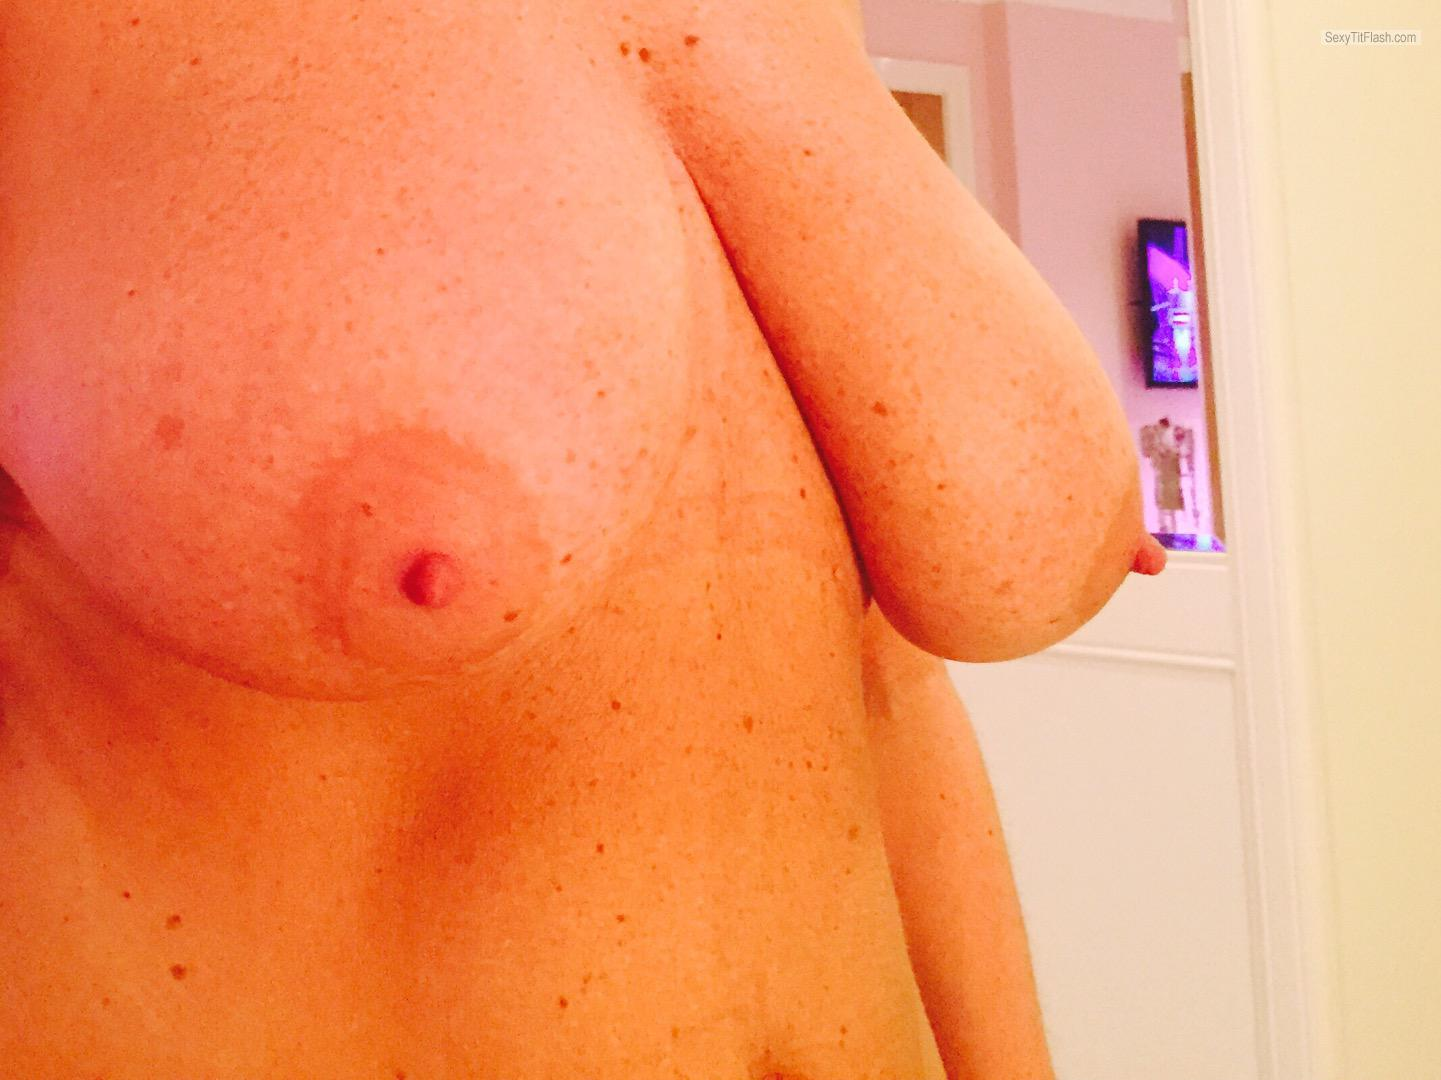 Tit Flash: My Big Tits (Selfie) - Flirt from United Kingdom